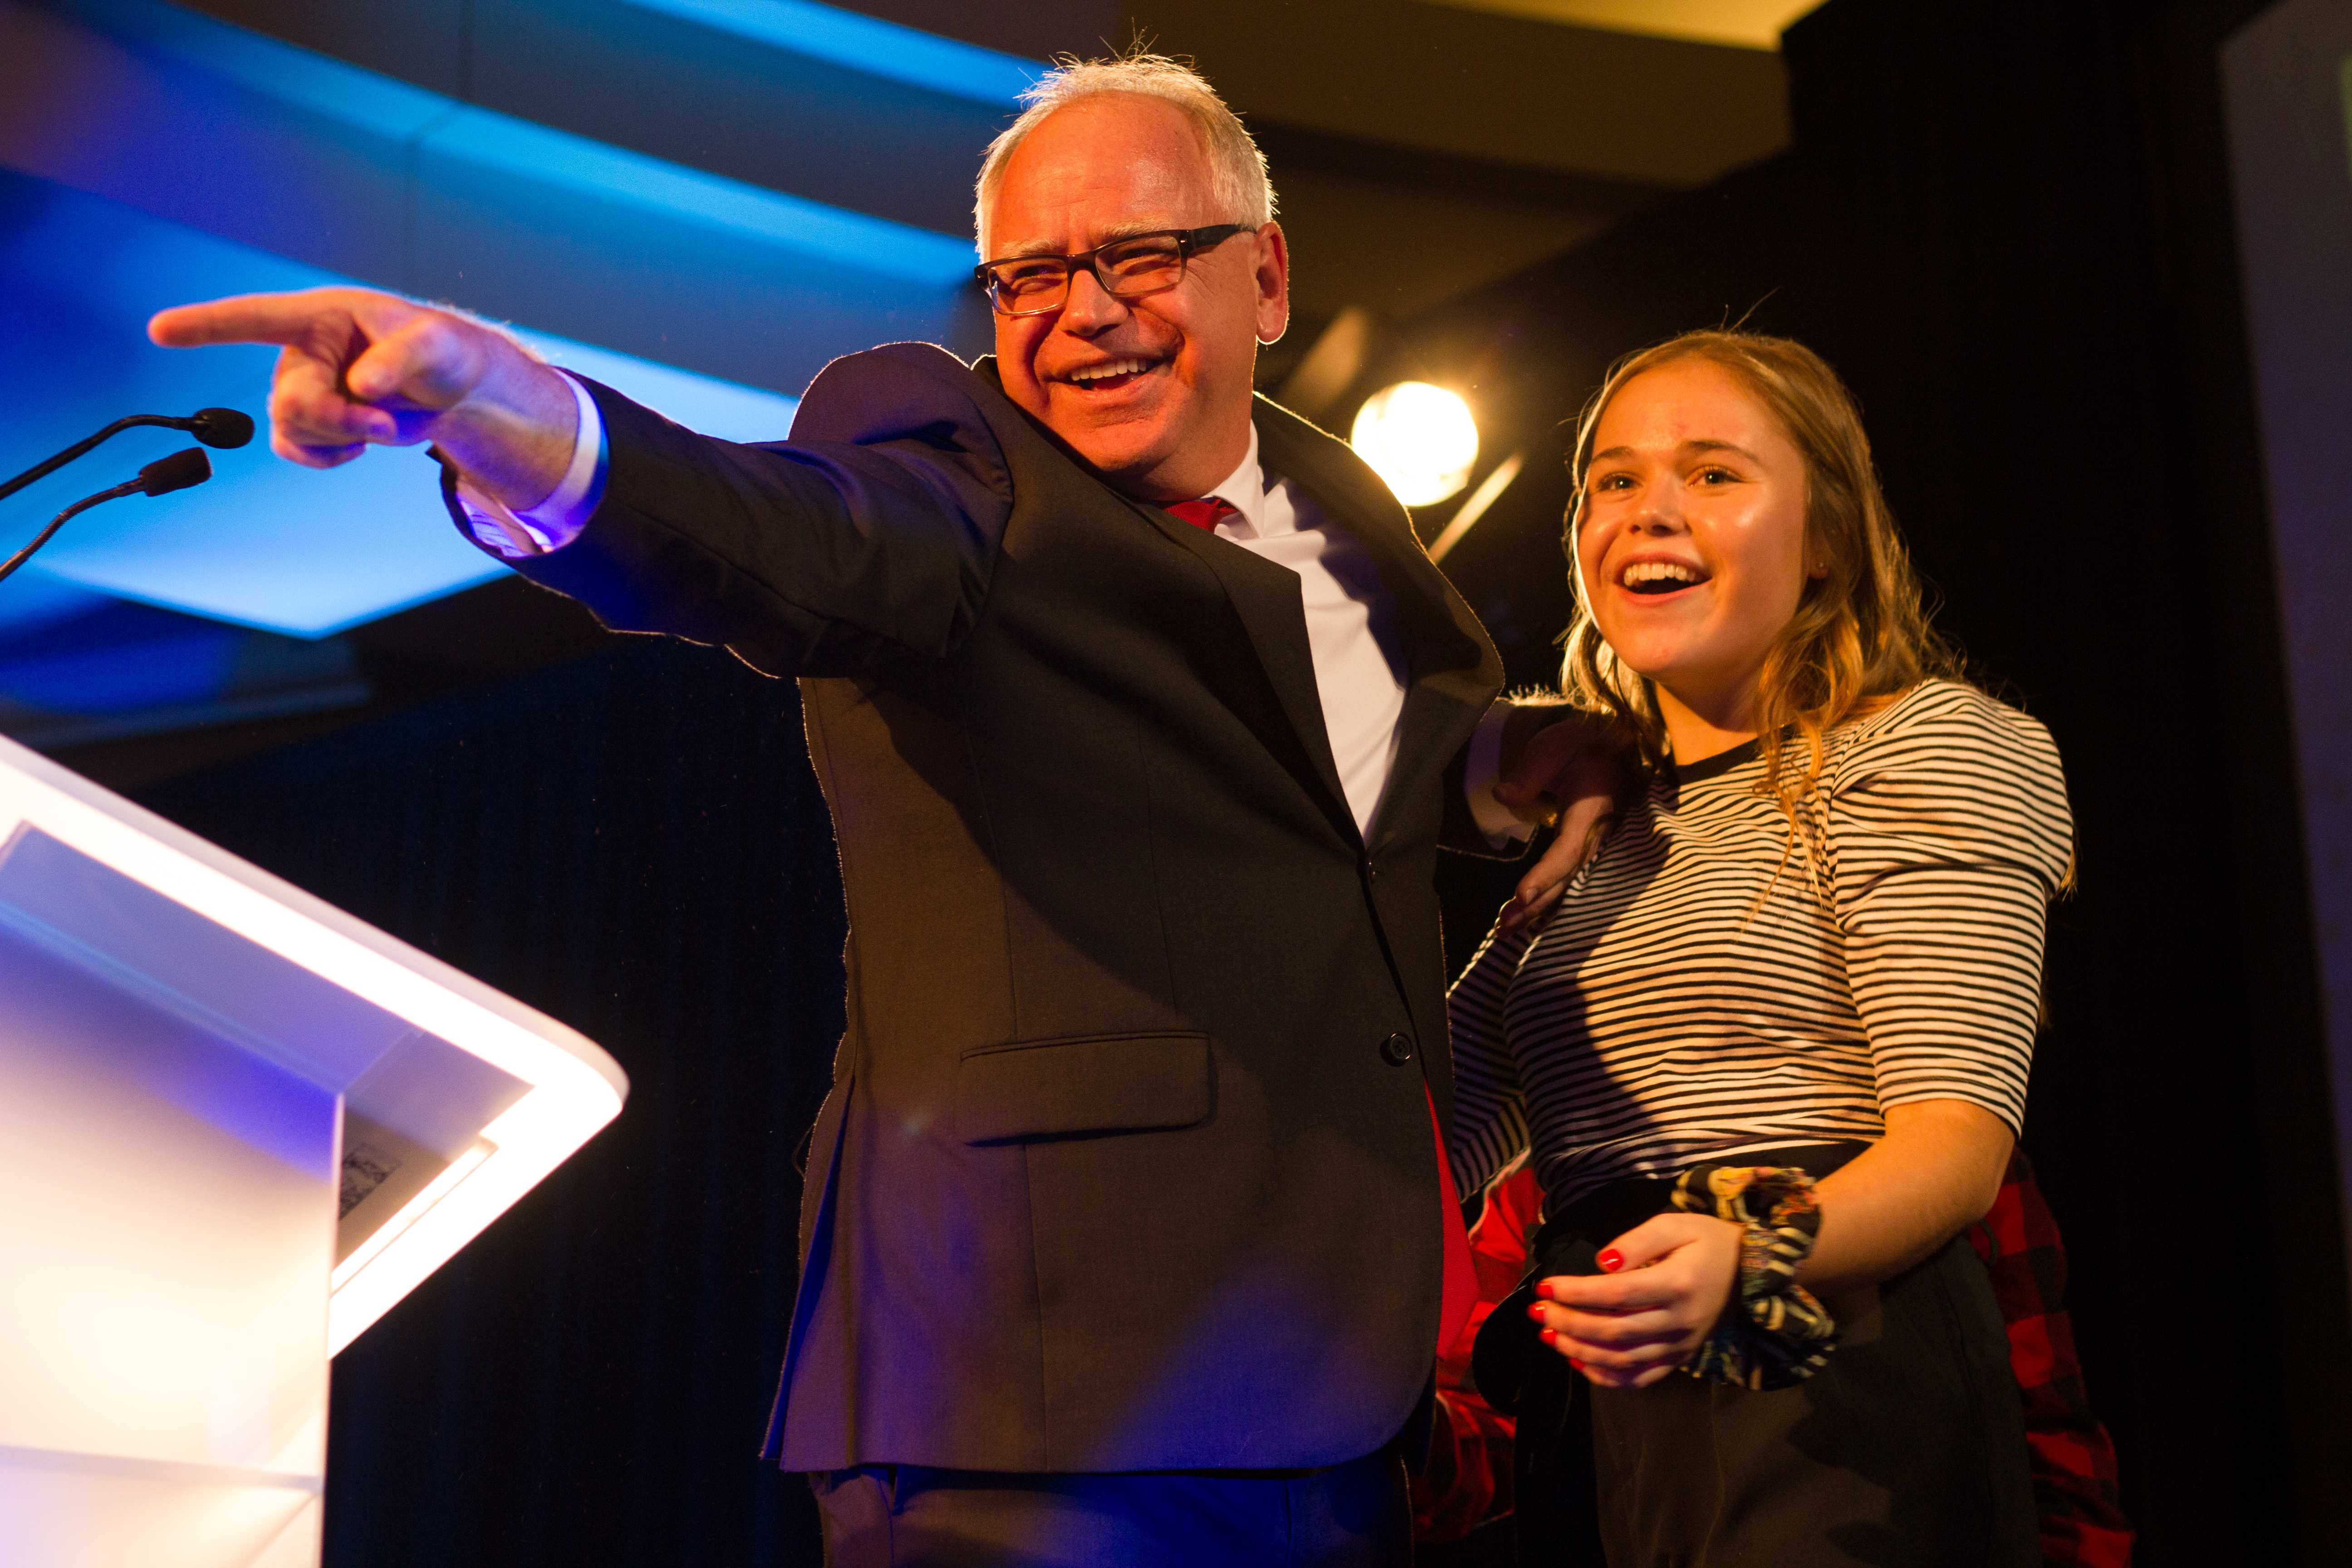 Governor-elect Rep. Tim Walz (D-MN) celebrates on stage with his daughter at the DFL election night party. Photo by Celia Johnson '22